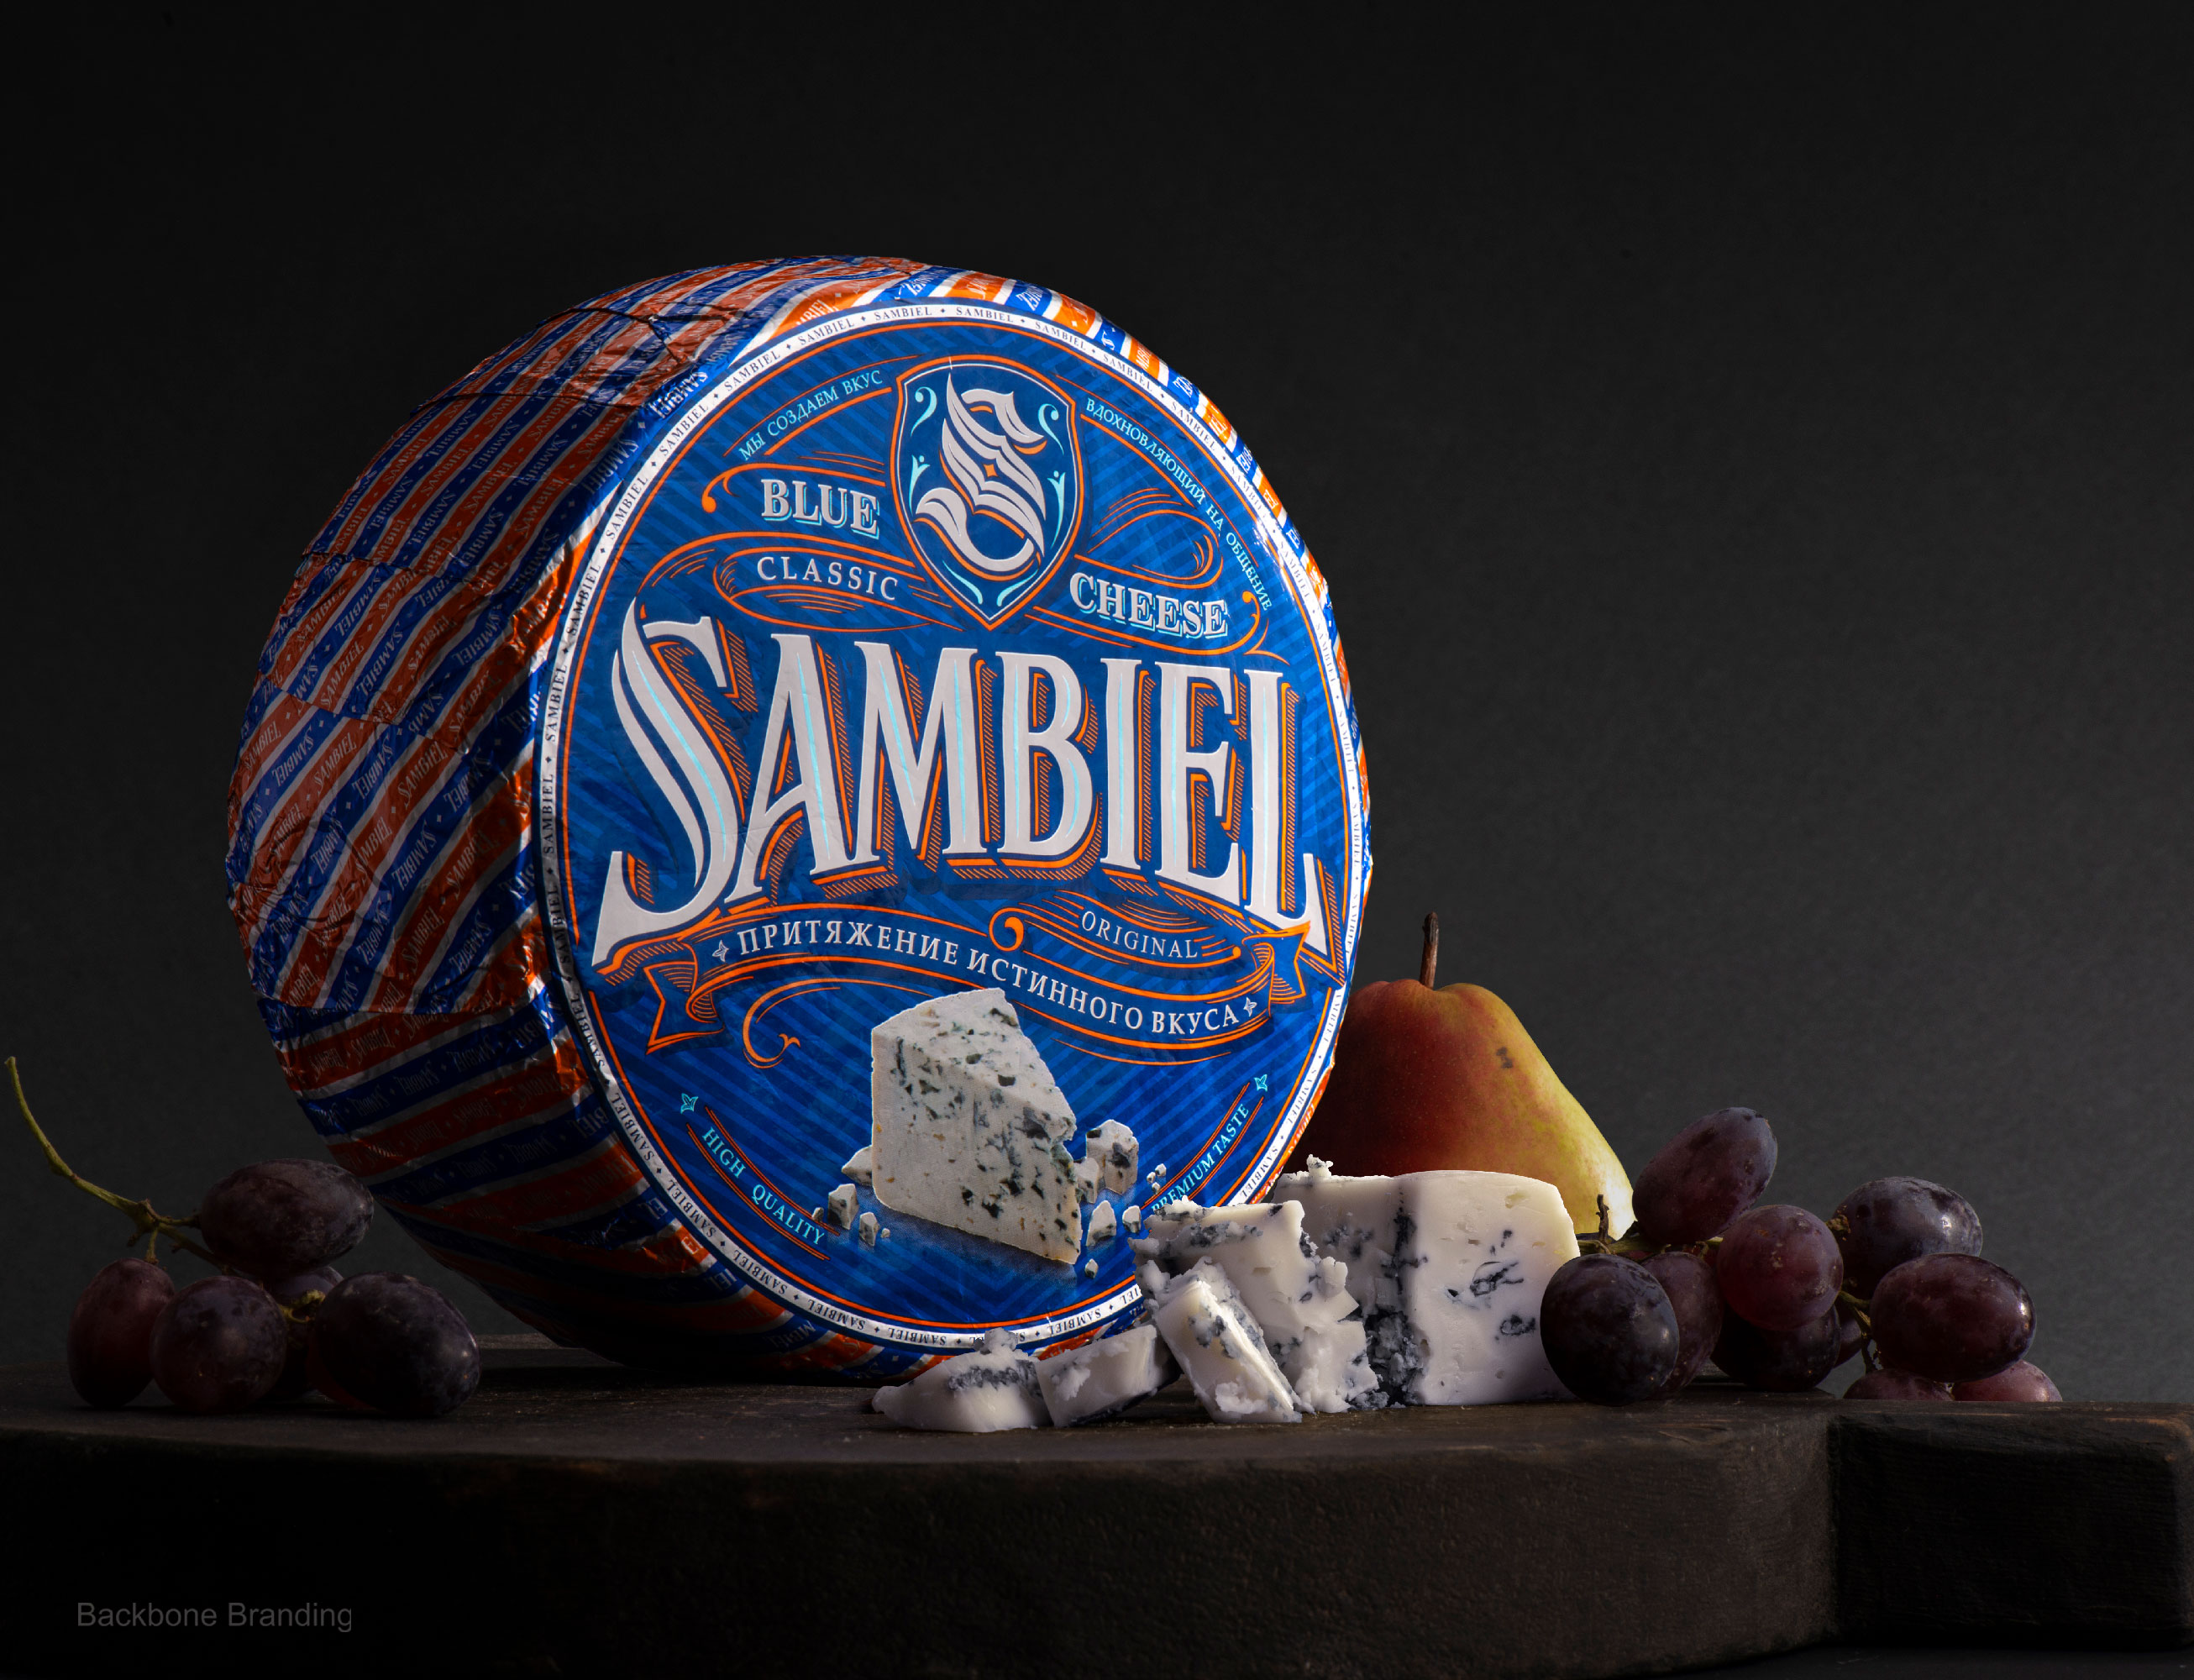 Backbone Branding Create Packaging Design for Sambiel Blue Cheese with a Character